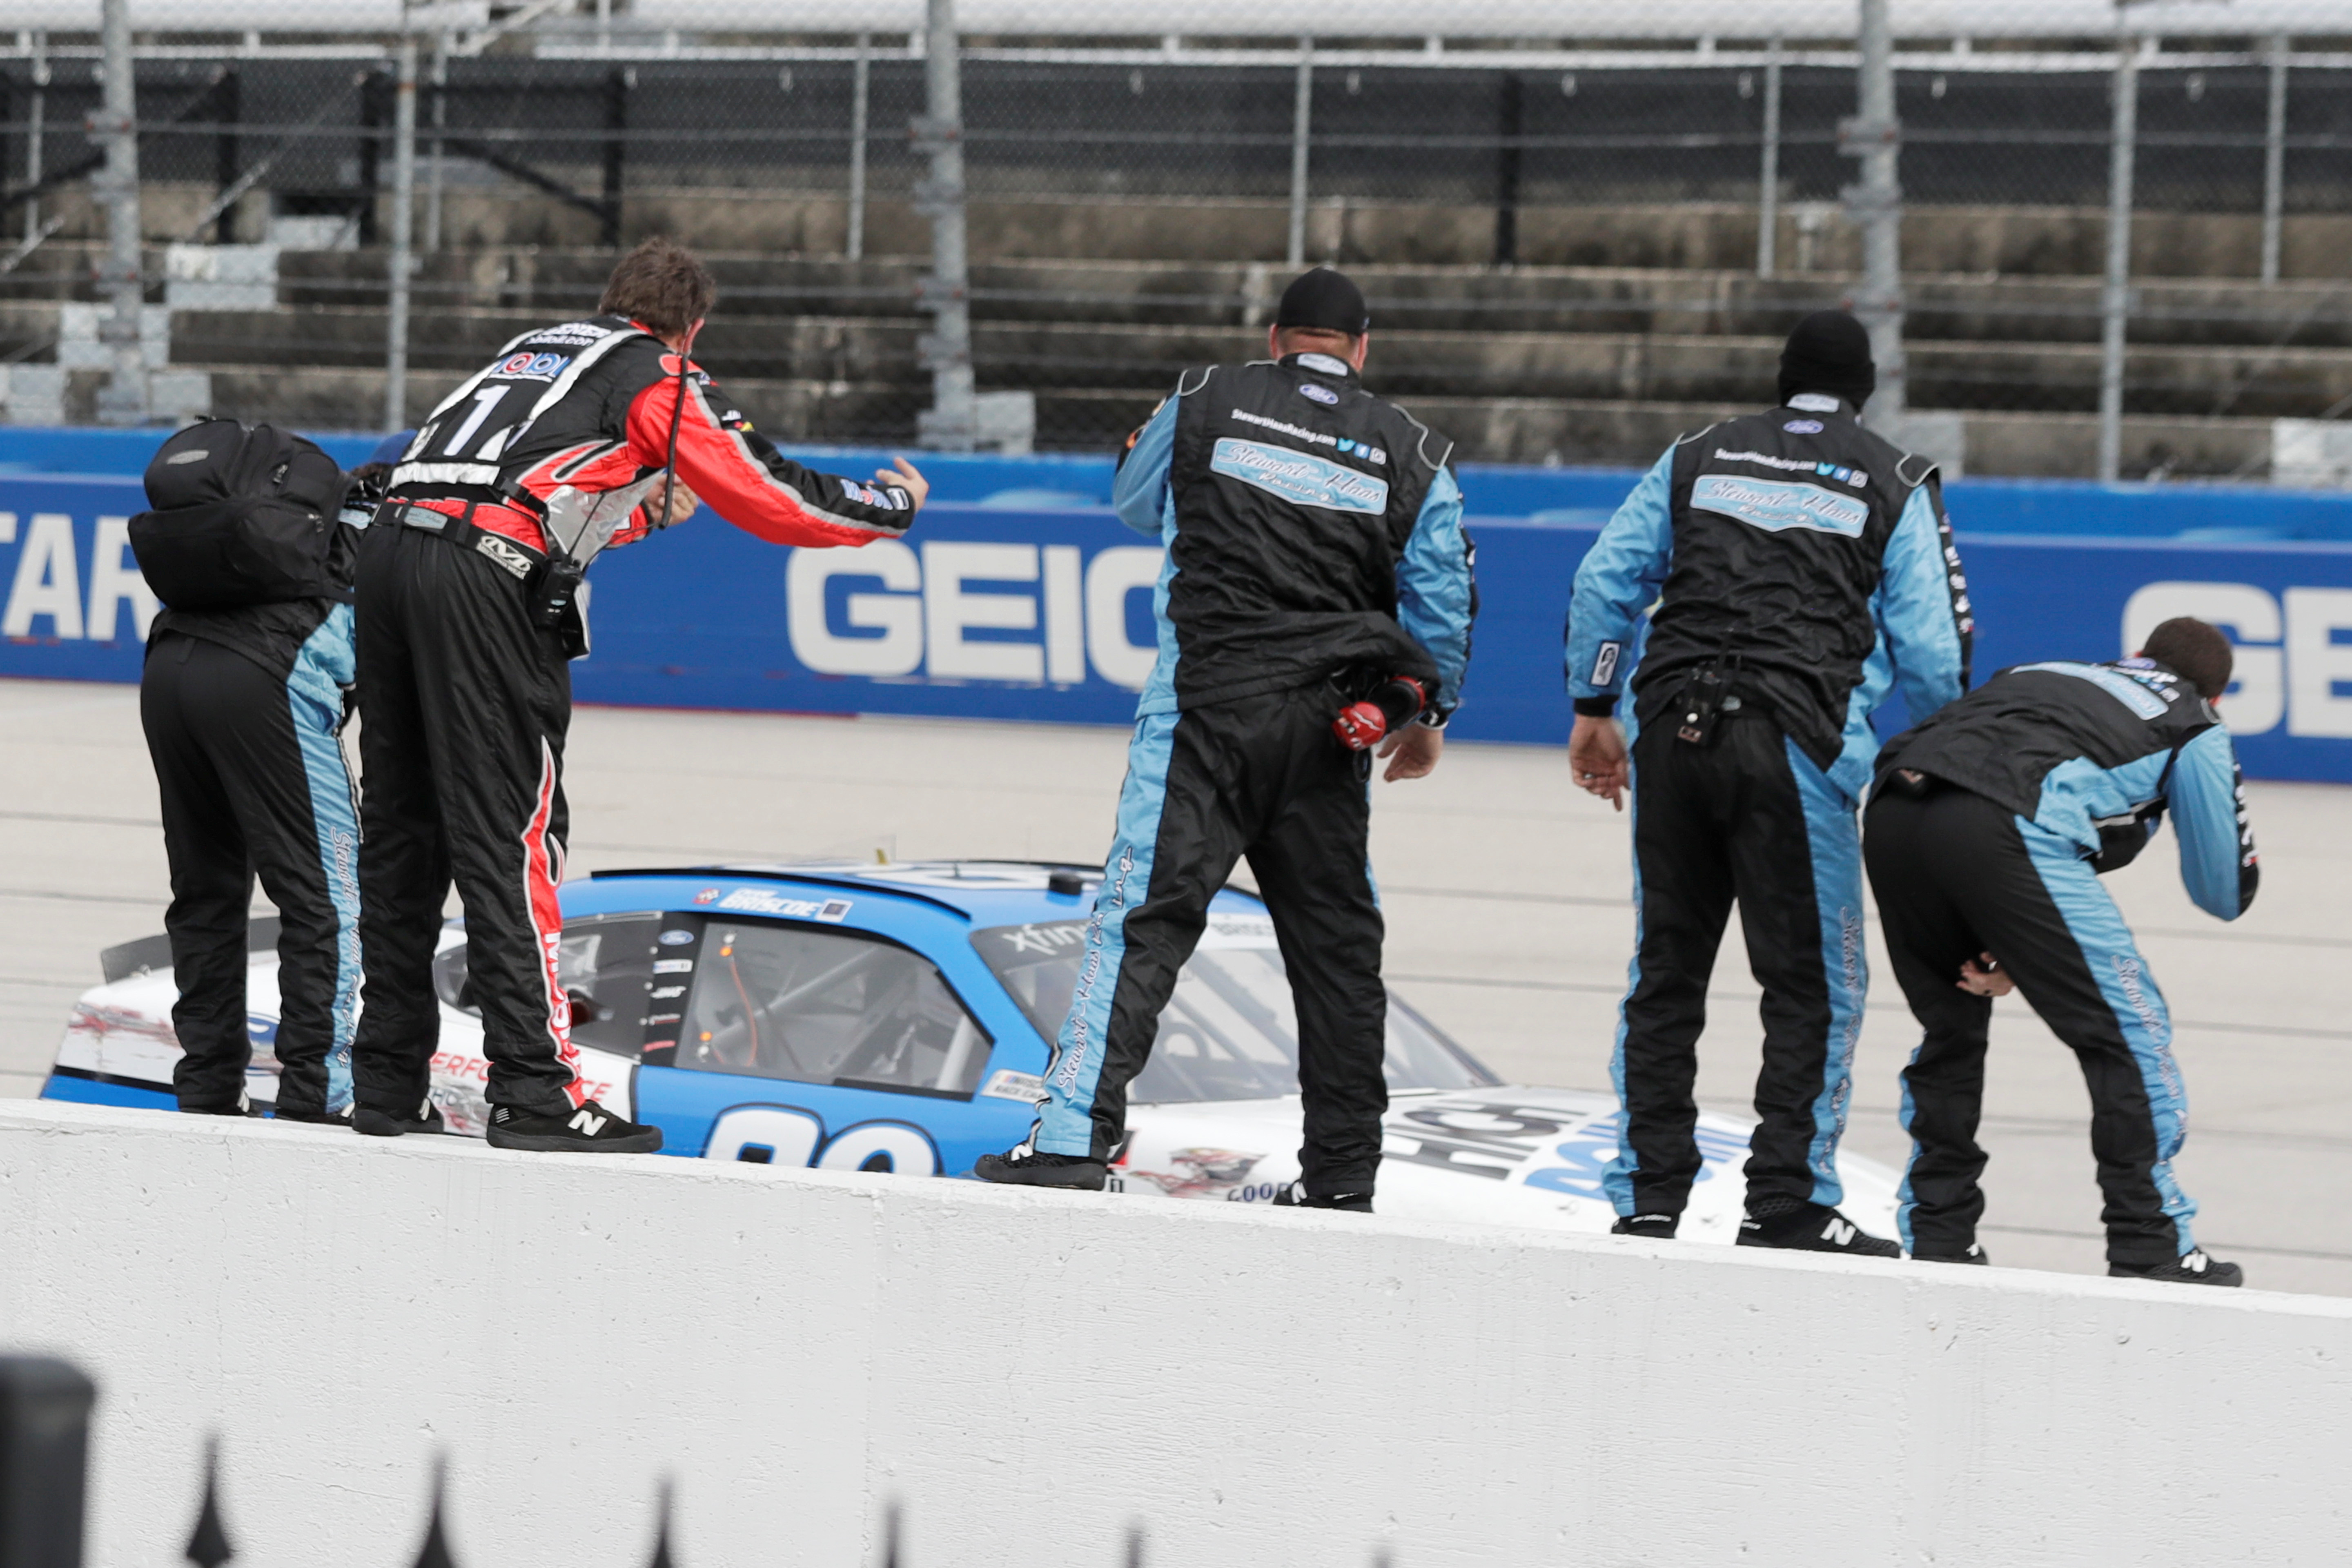 NASCAR back on track as F1 and IndyCar stuck in virtual world